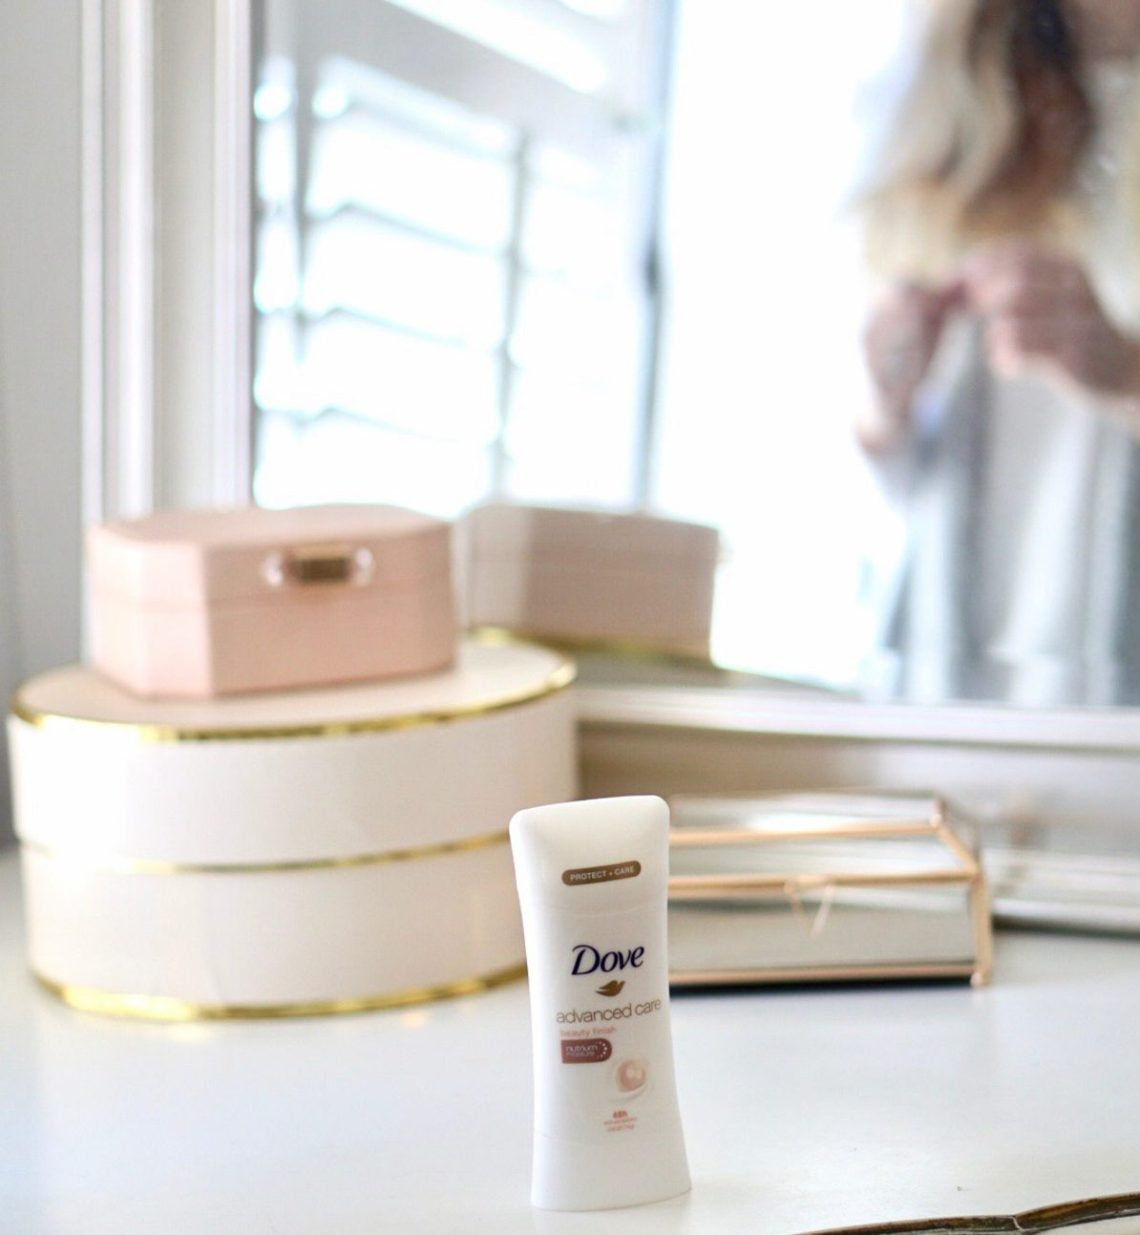 Winter Skincare Tips with Dove and Misty Nelson, lifestyle blogger and influencer frostedblog.com @frostedevents